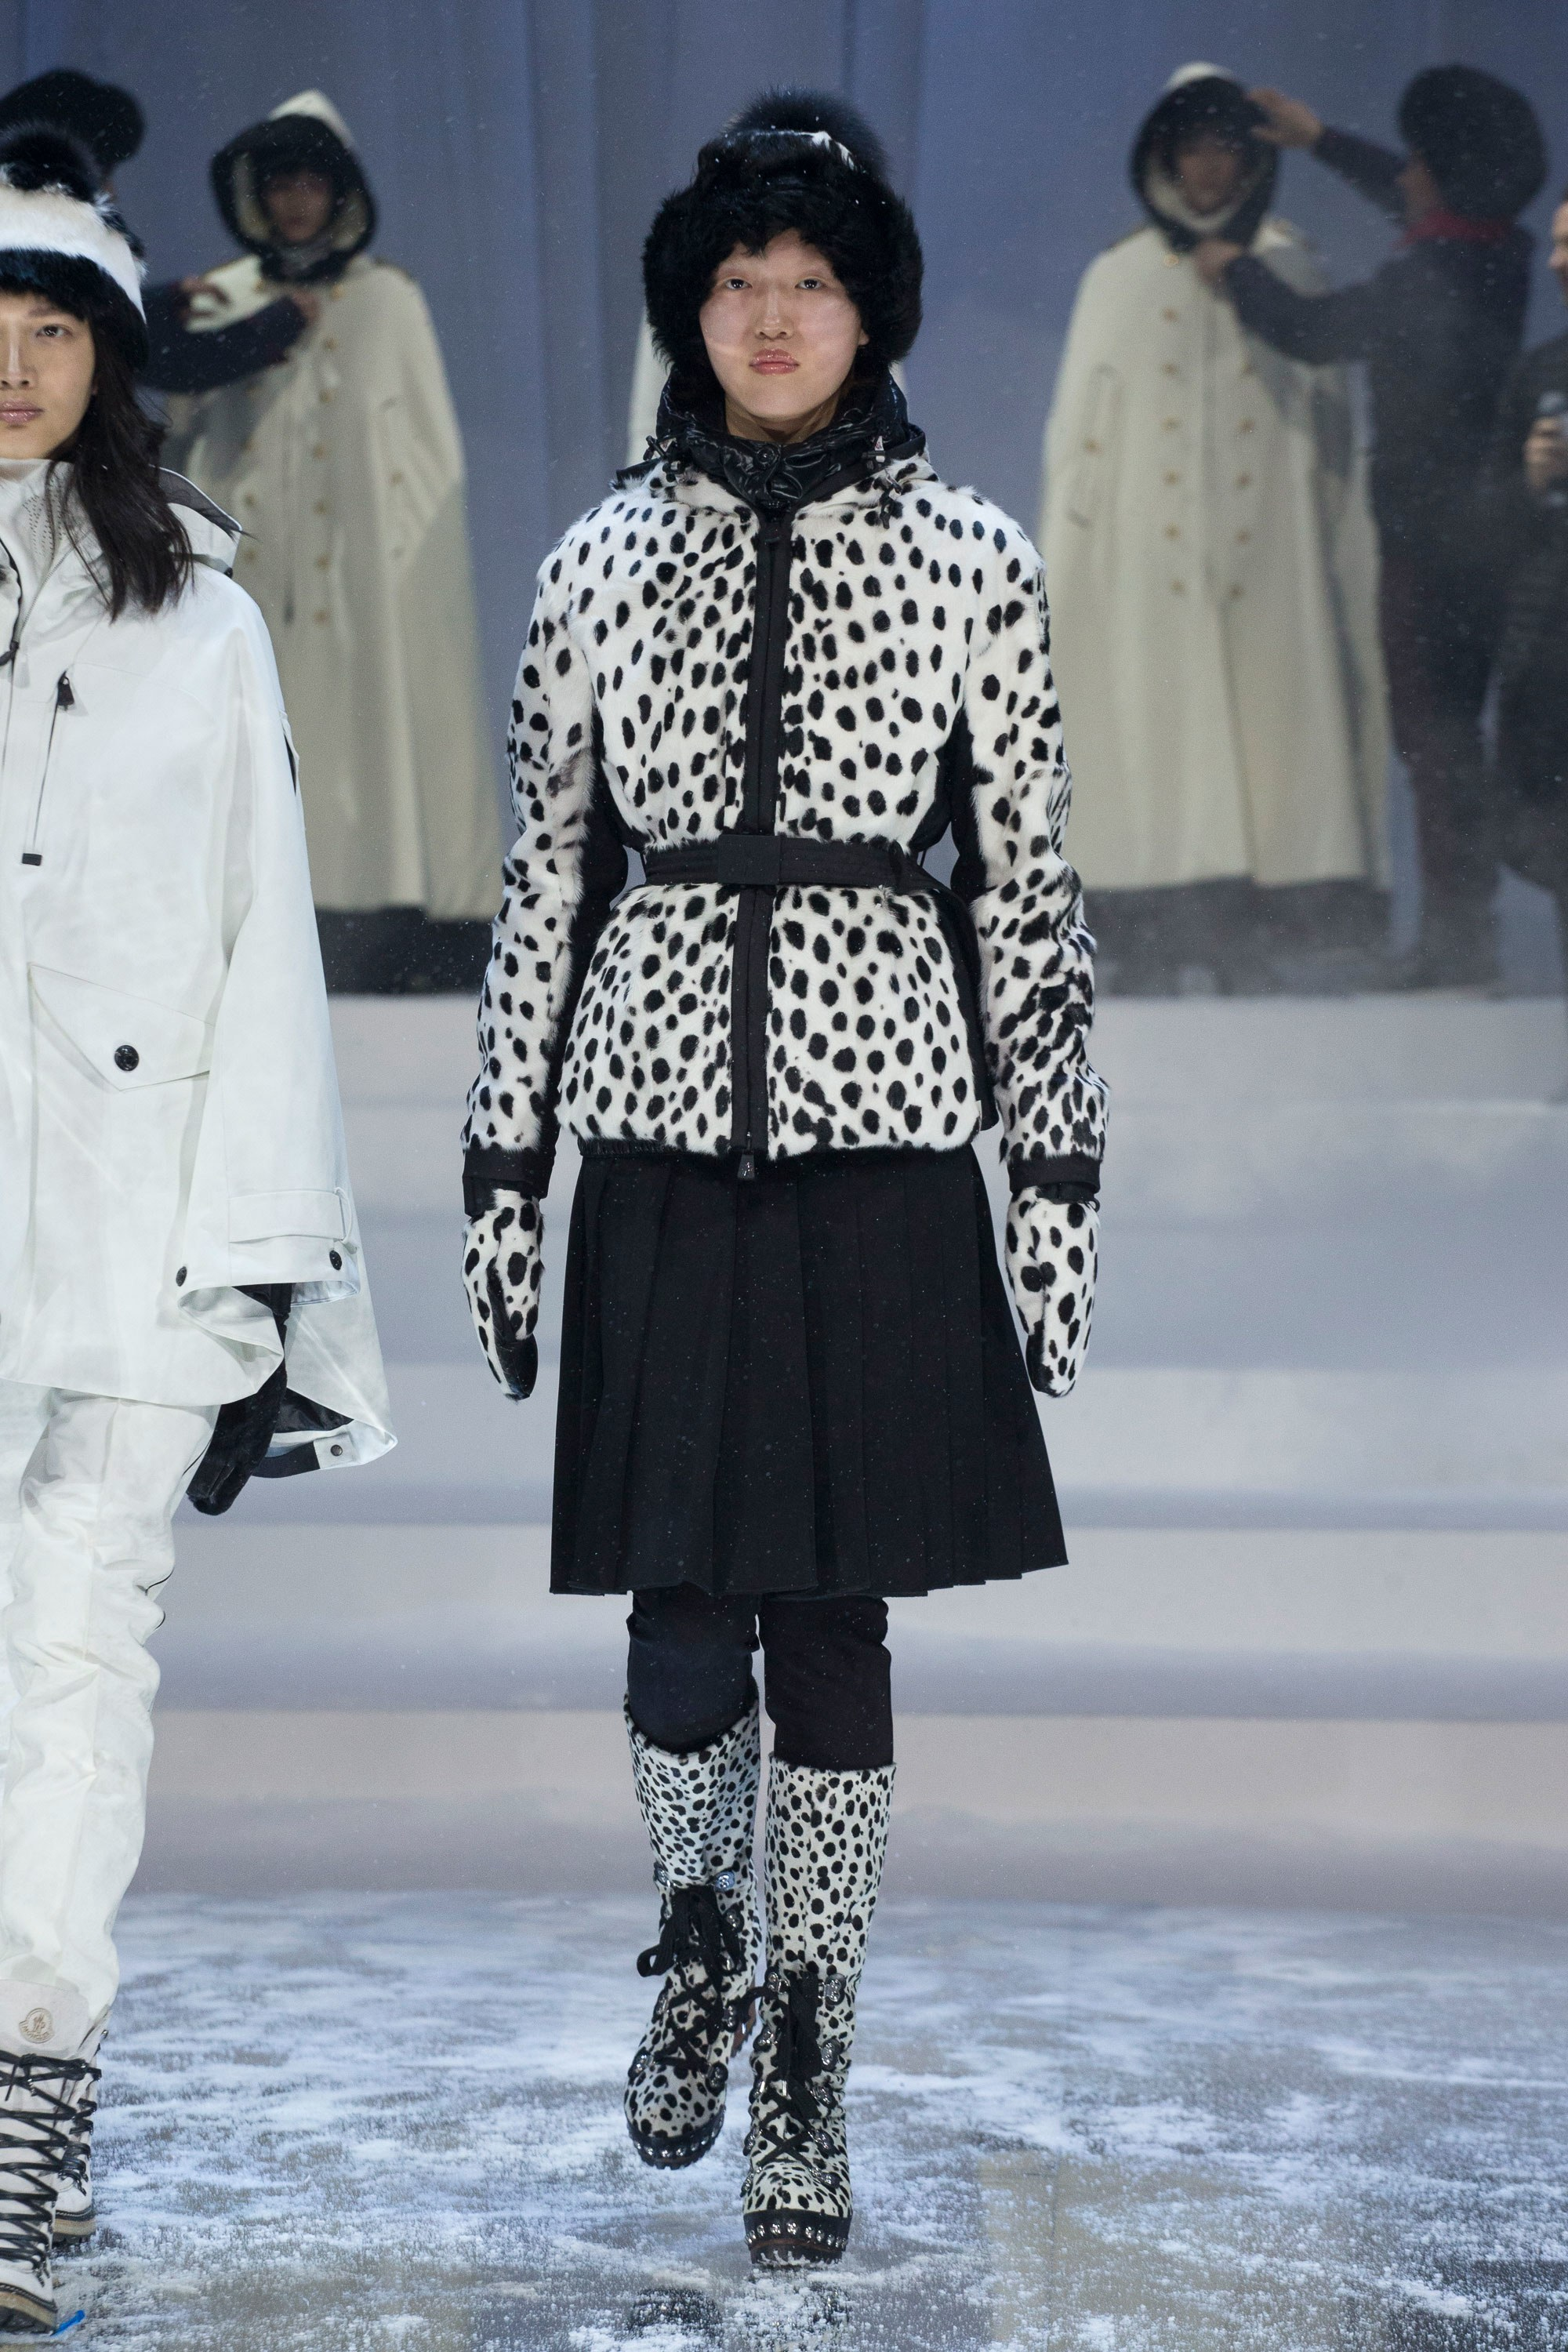 Watch - Grenoble moncler fall runway video